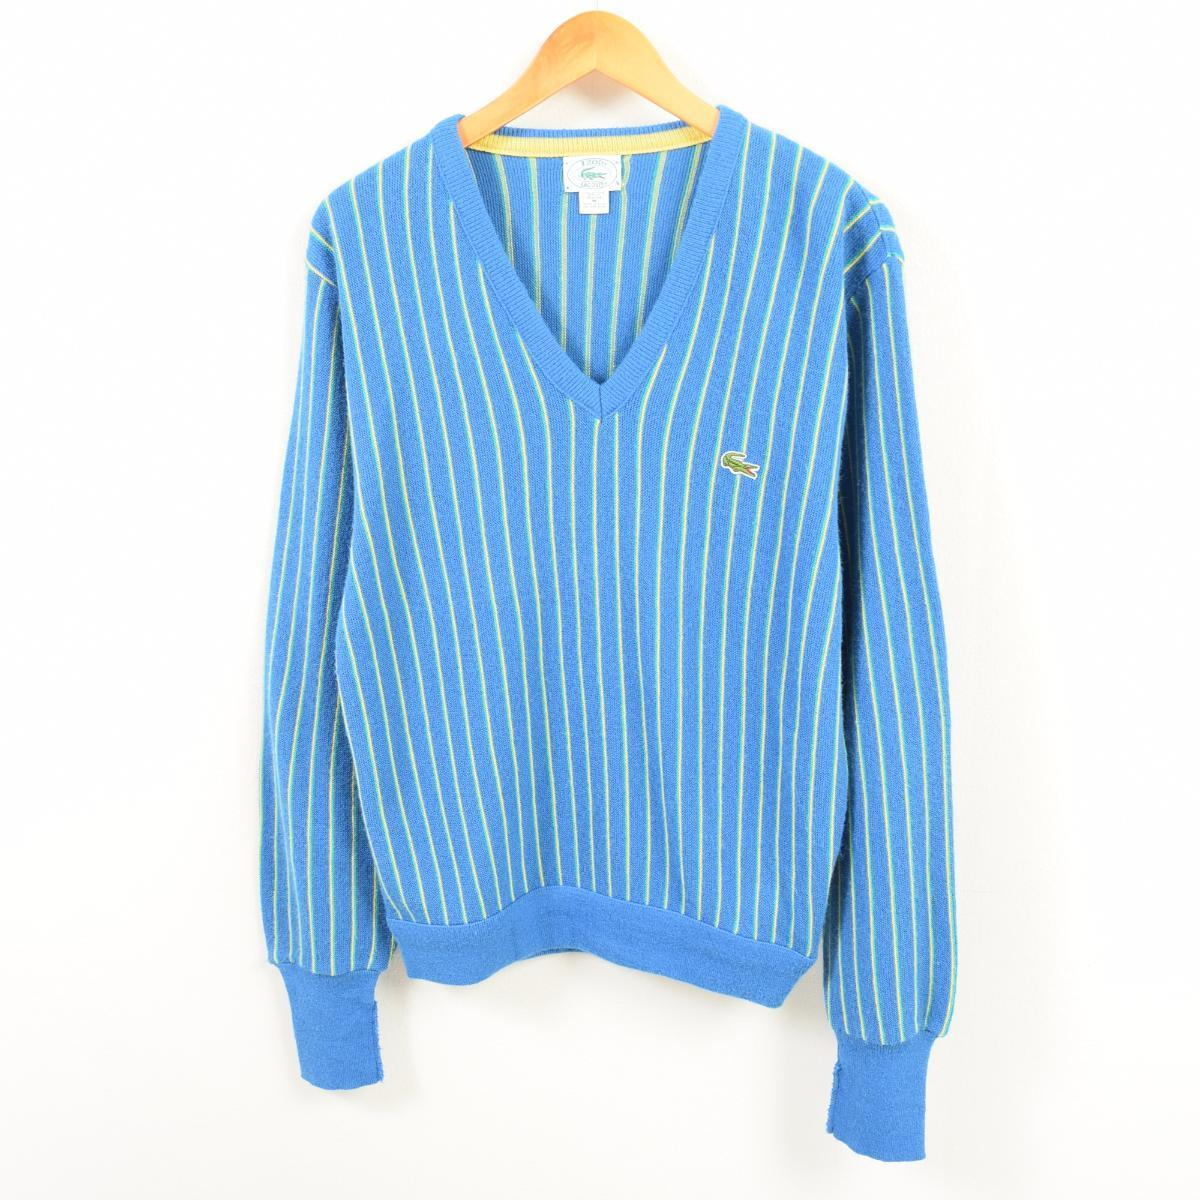 849f8ad4 Men M vintage /wav4541 in the 80~90 generation made in Lacoste LACOSTE IZOD  stripe pattern V neck acrylic knit sweater USA